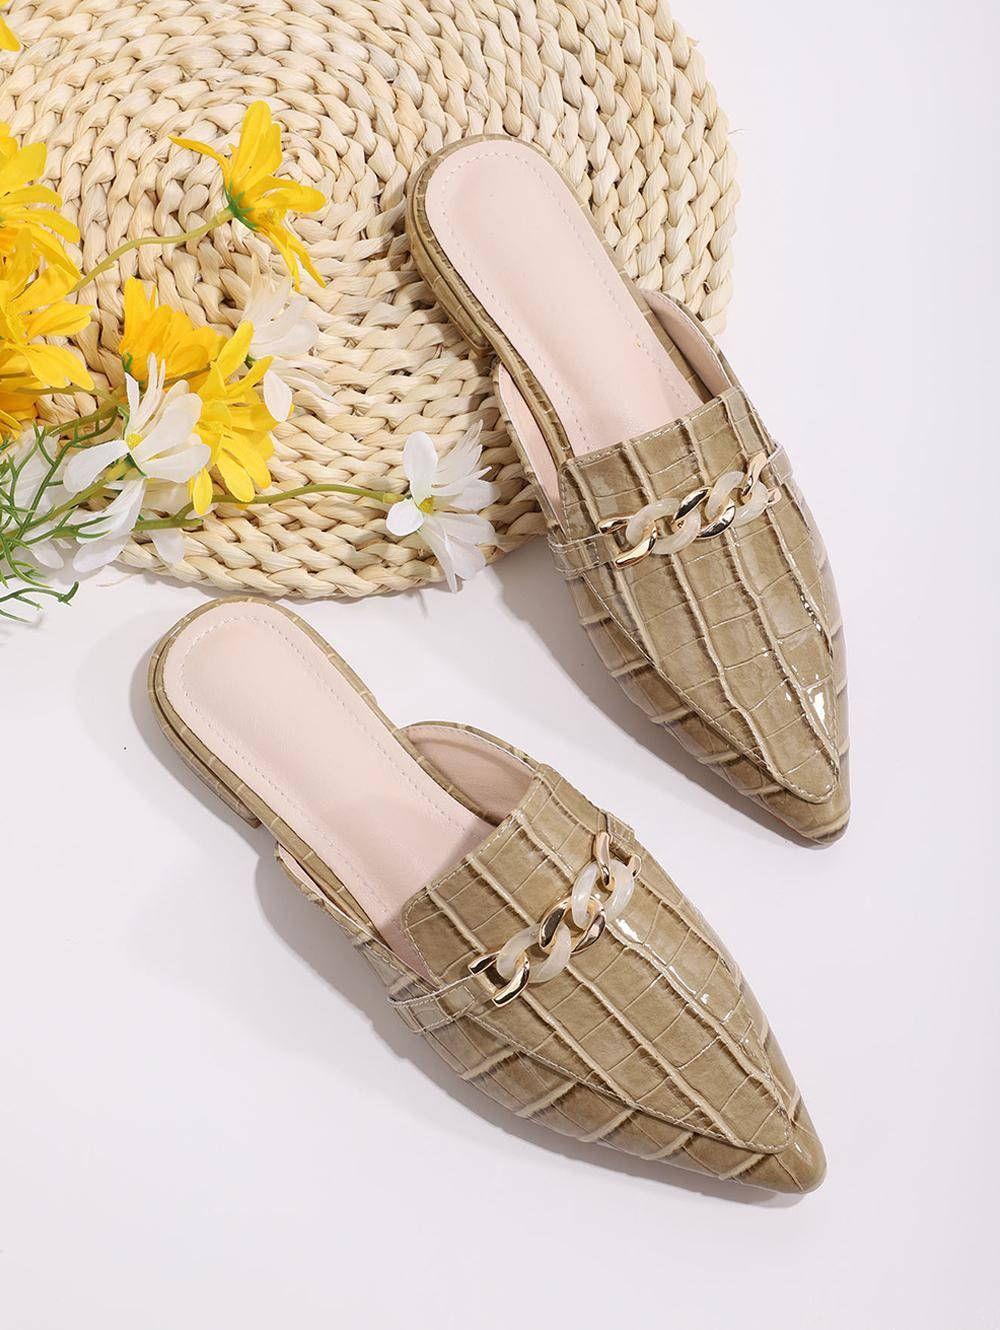 Animal Embossed Chain Embellished Half Flat Shoes in FALL LEAF BROWN - Size: EU 40